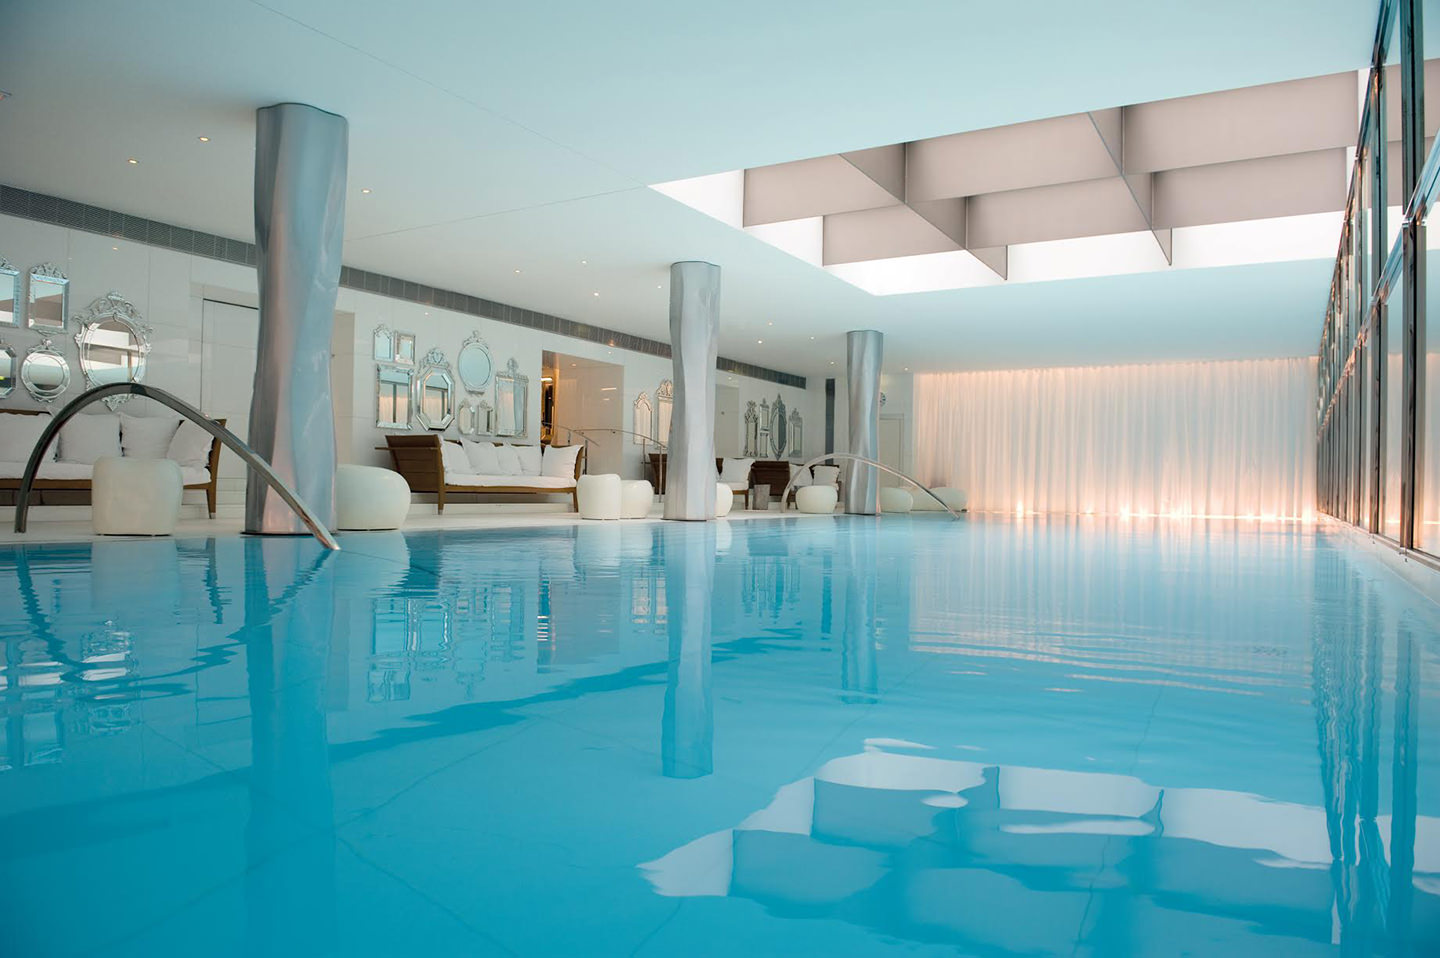 Blog-Mode-And-The-City-Lifestyle-Cinq-Petites-Choses-167-spa-clarins-royal-Monceau